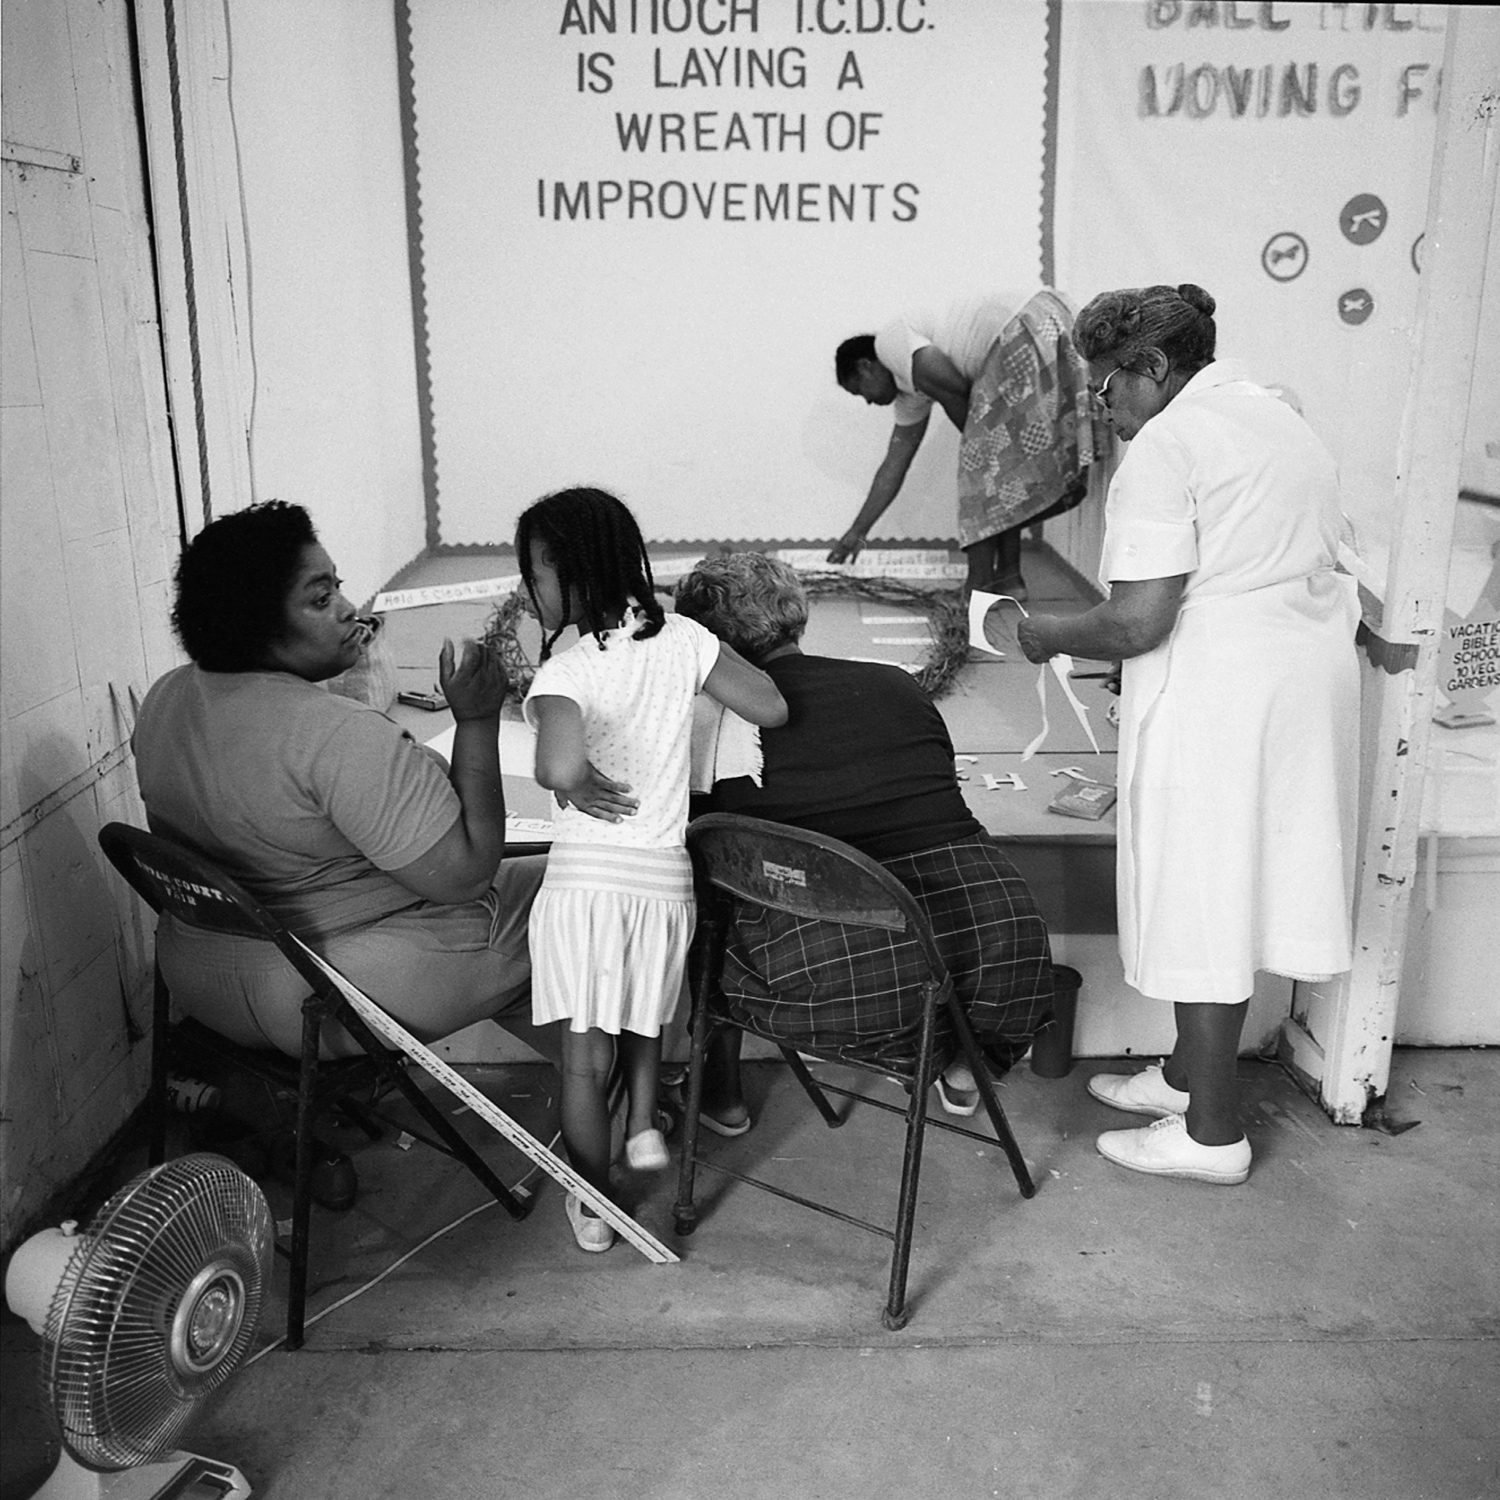 Women Preparing a Booth, Ripley, Mississippi, archival pigment print, 16x20, 1990